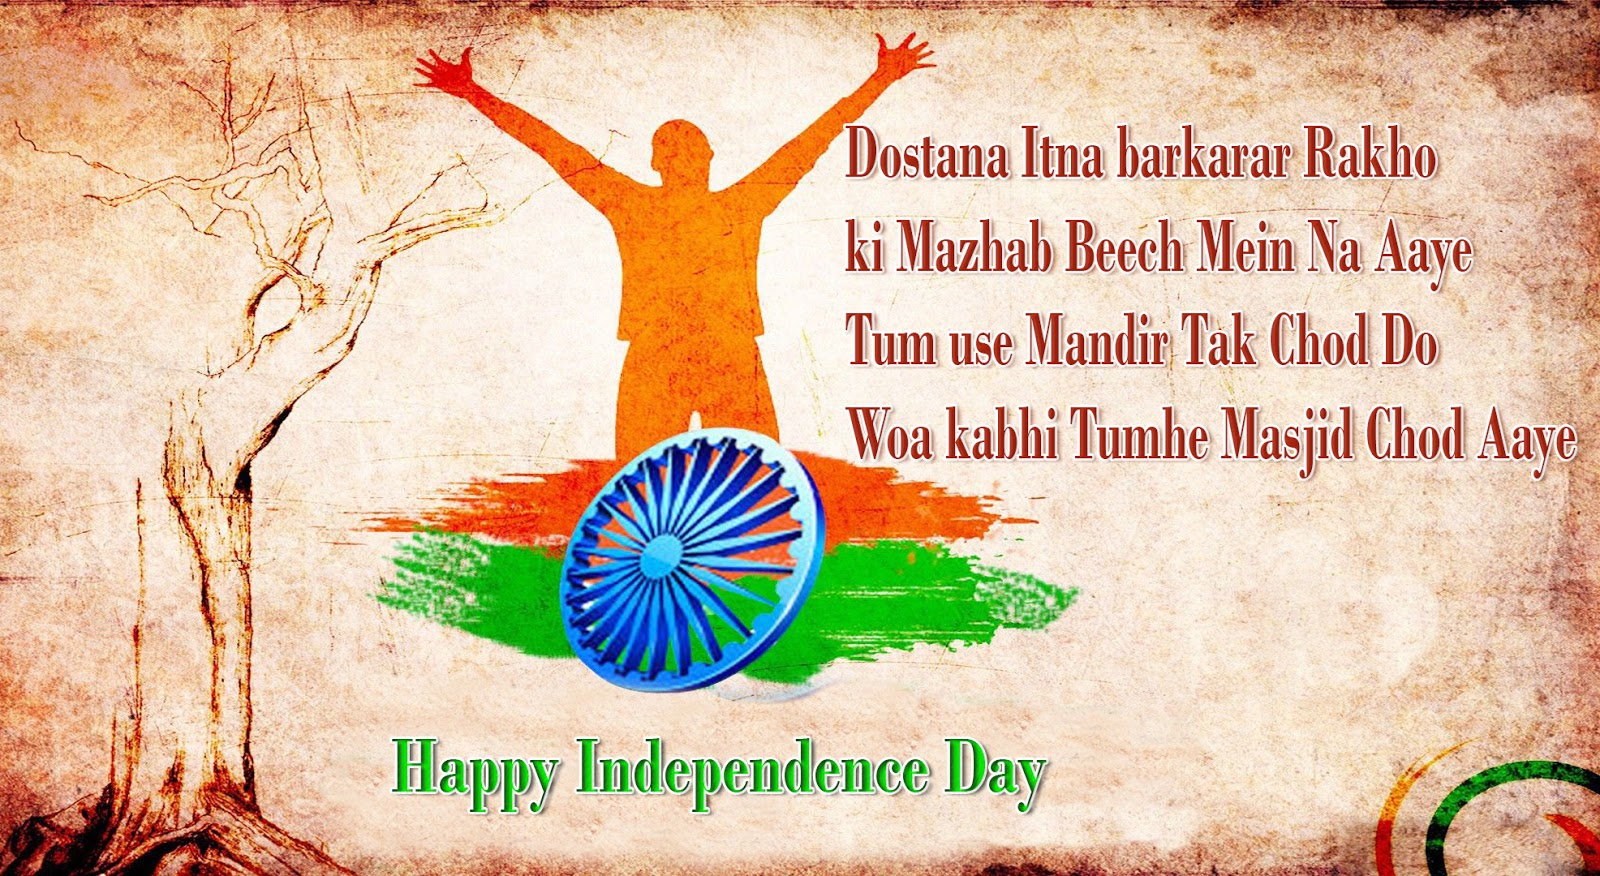 Happy Independence Day 2019 Wishes images, quotes in Hindi